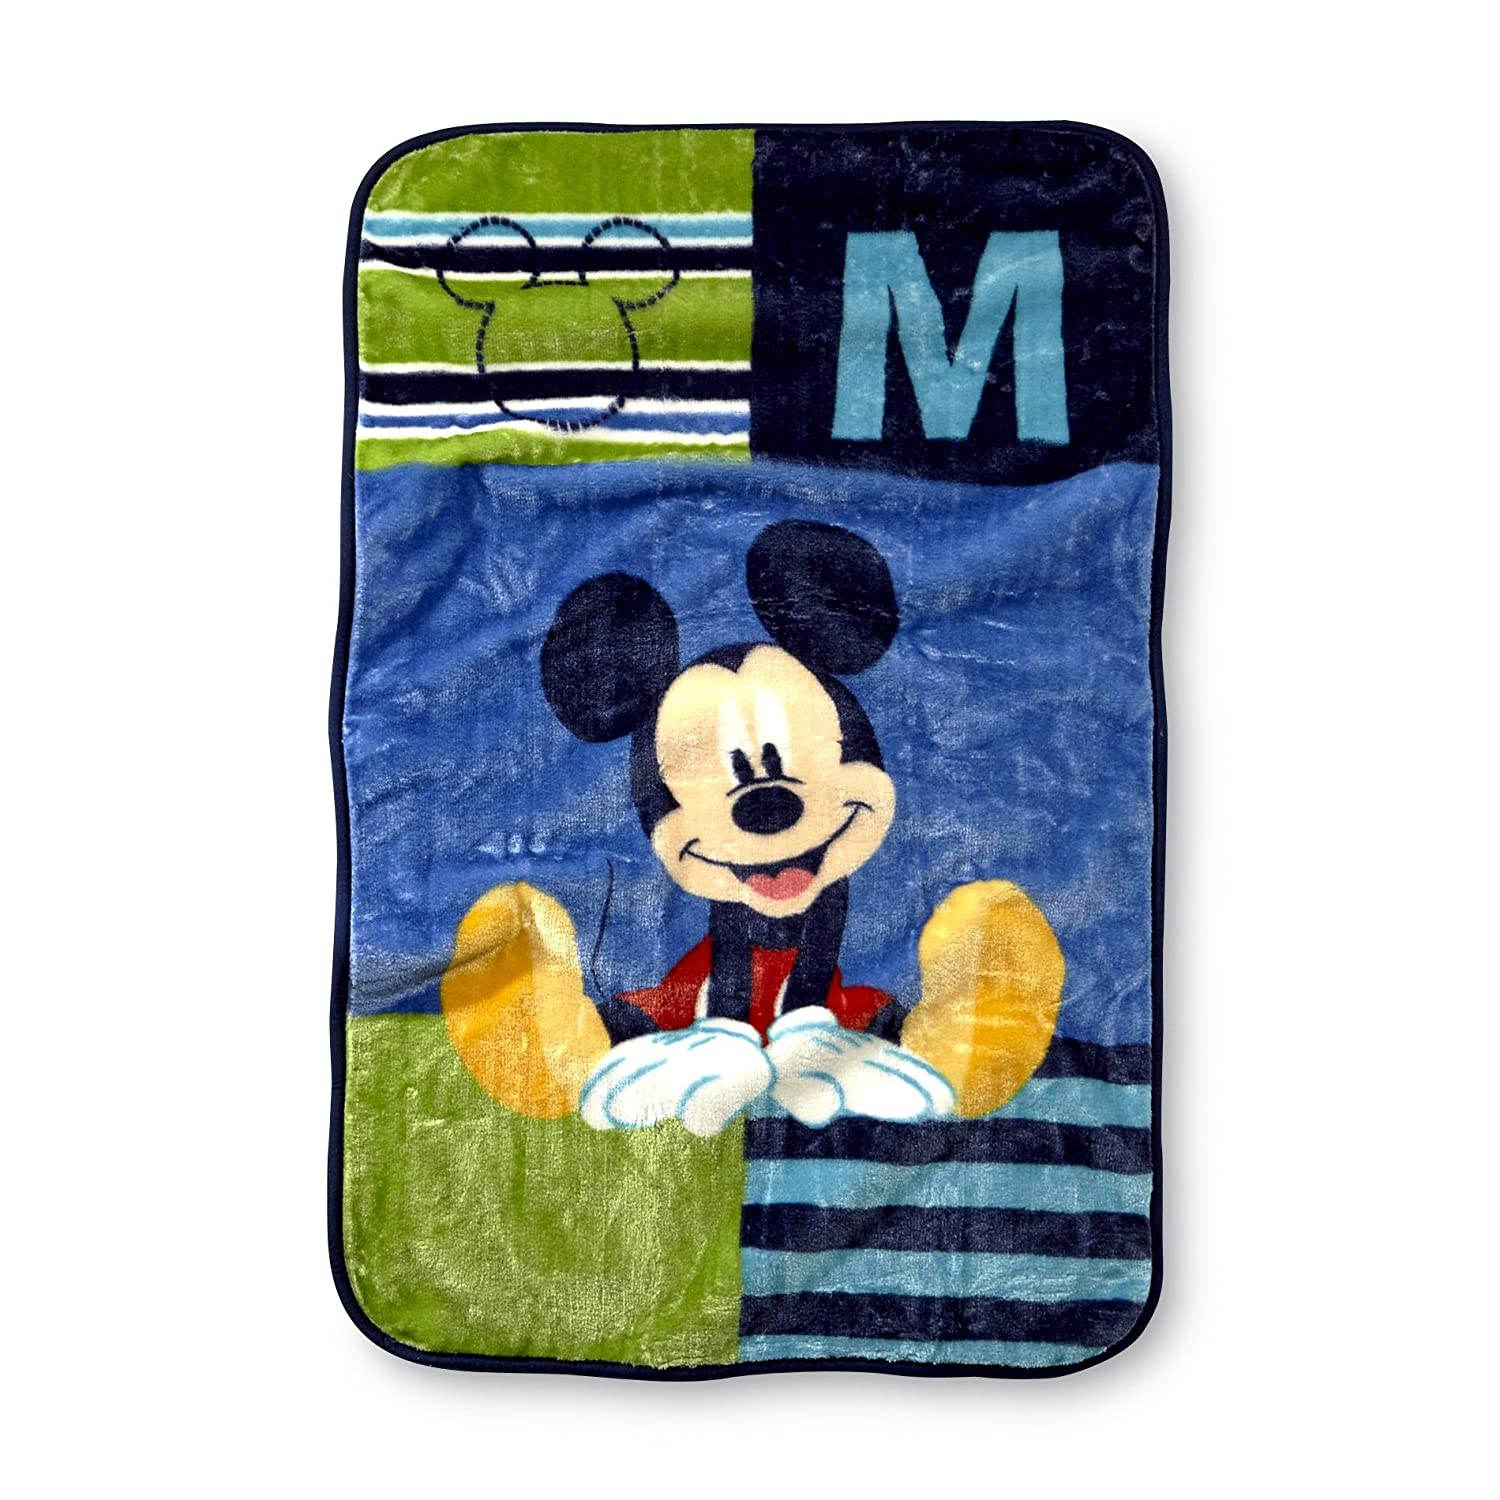 Disney Mickey Mouse Luxury Plush Throw Baby Blanket, Navy/Lime/Red/Yellow Crown Crafts Inc 5091225